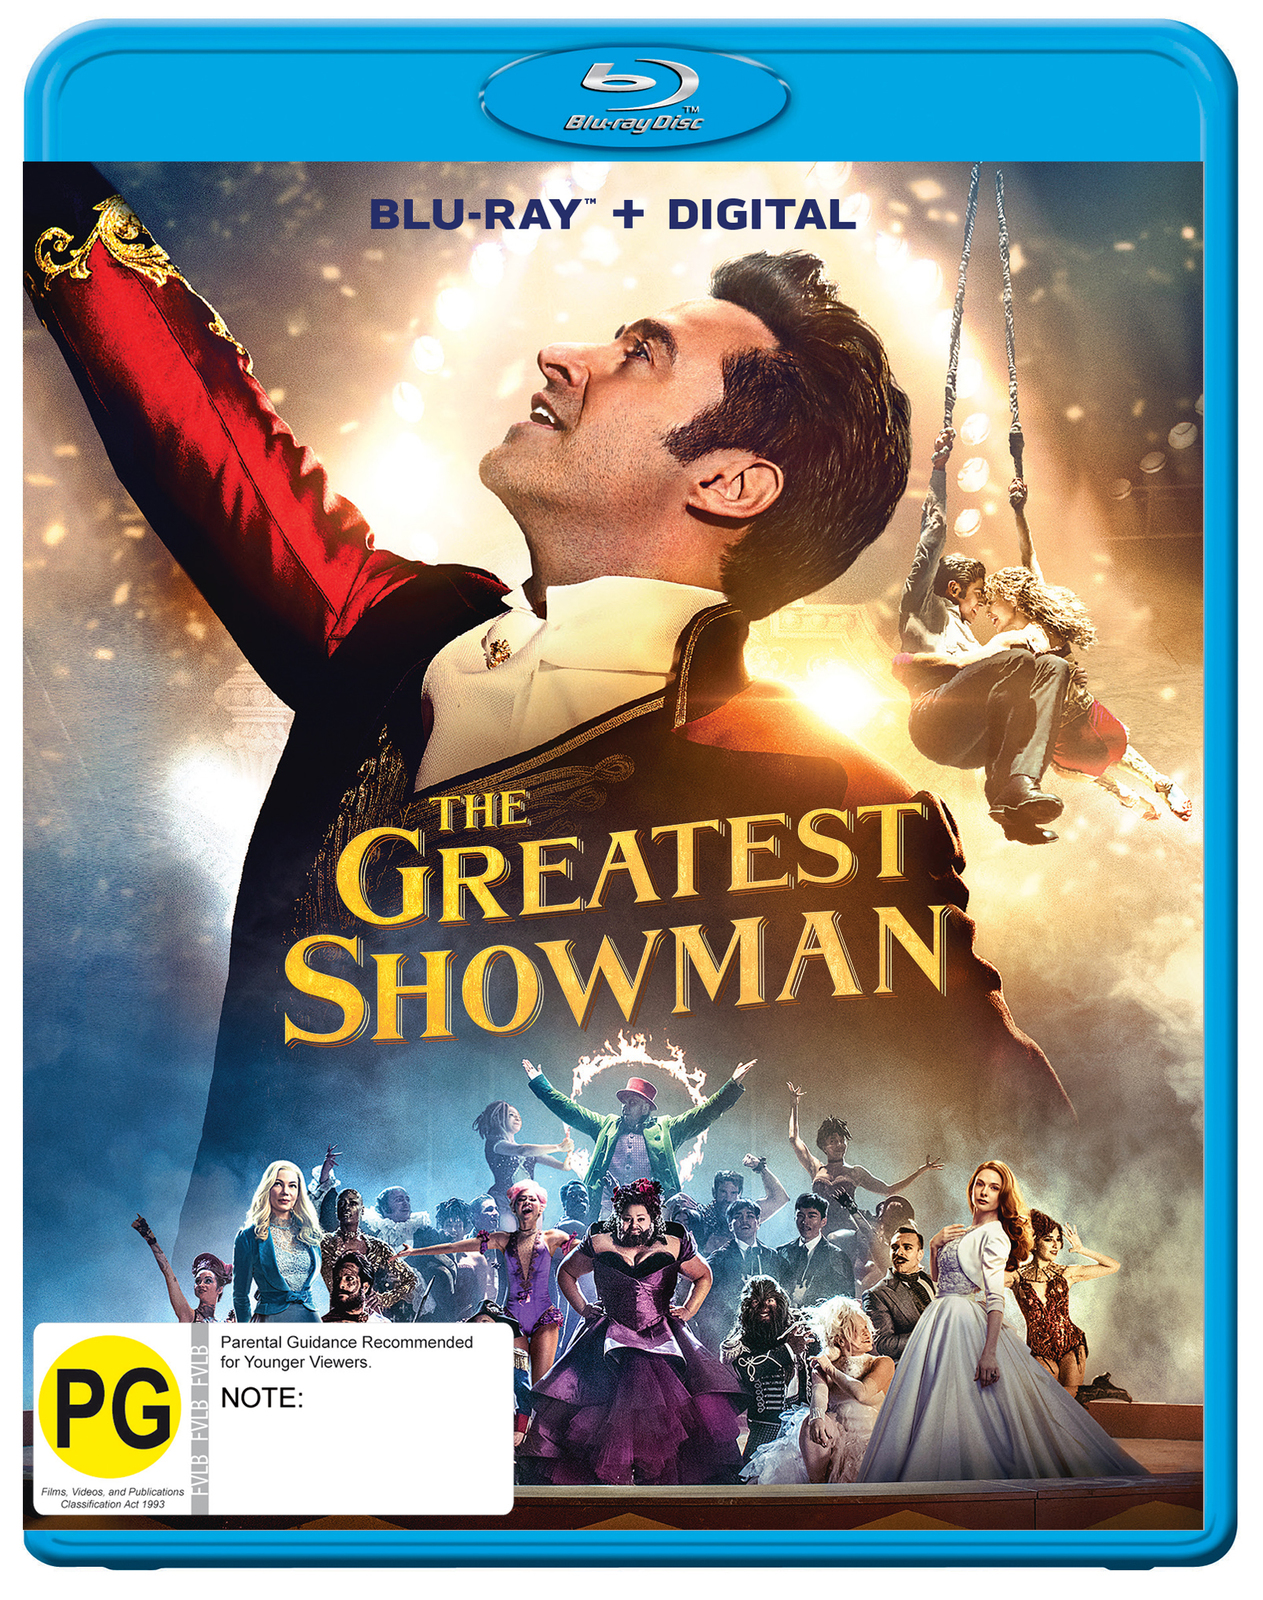 The Greatest Showman on Blu-ray image